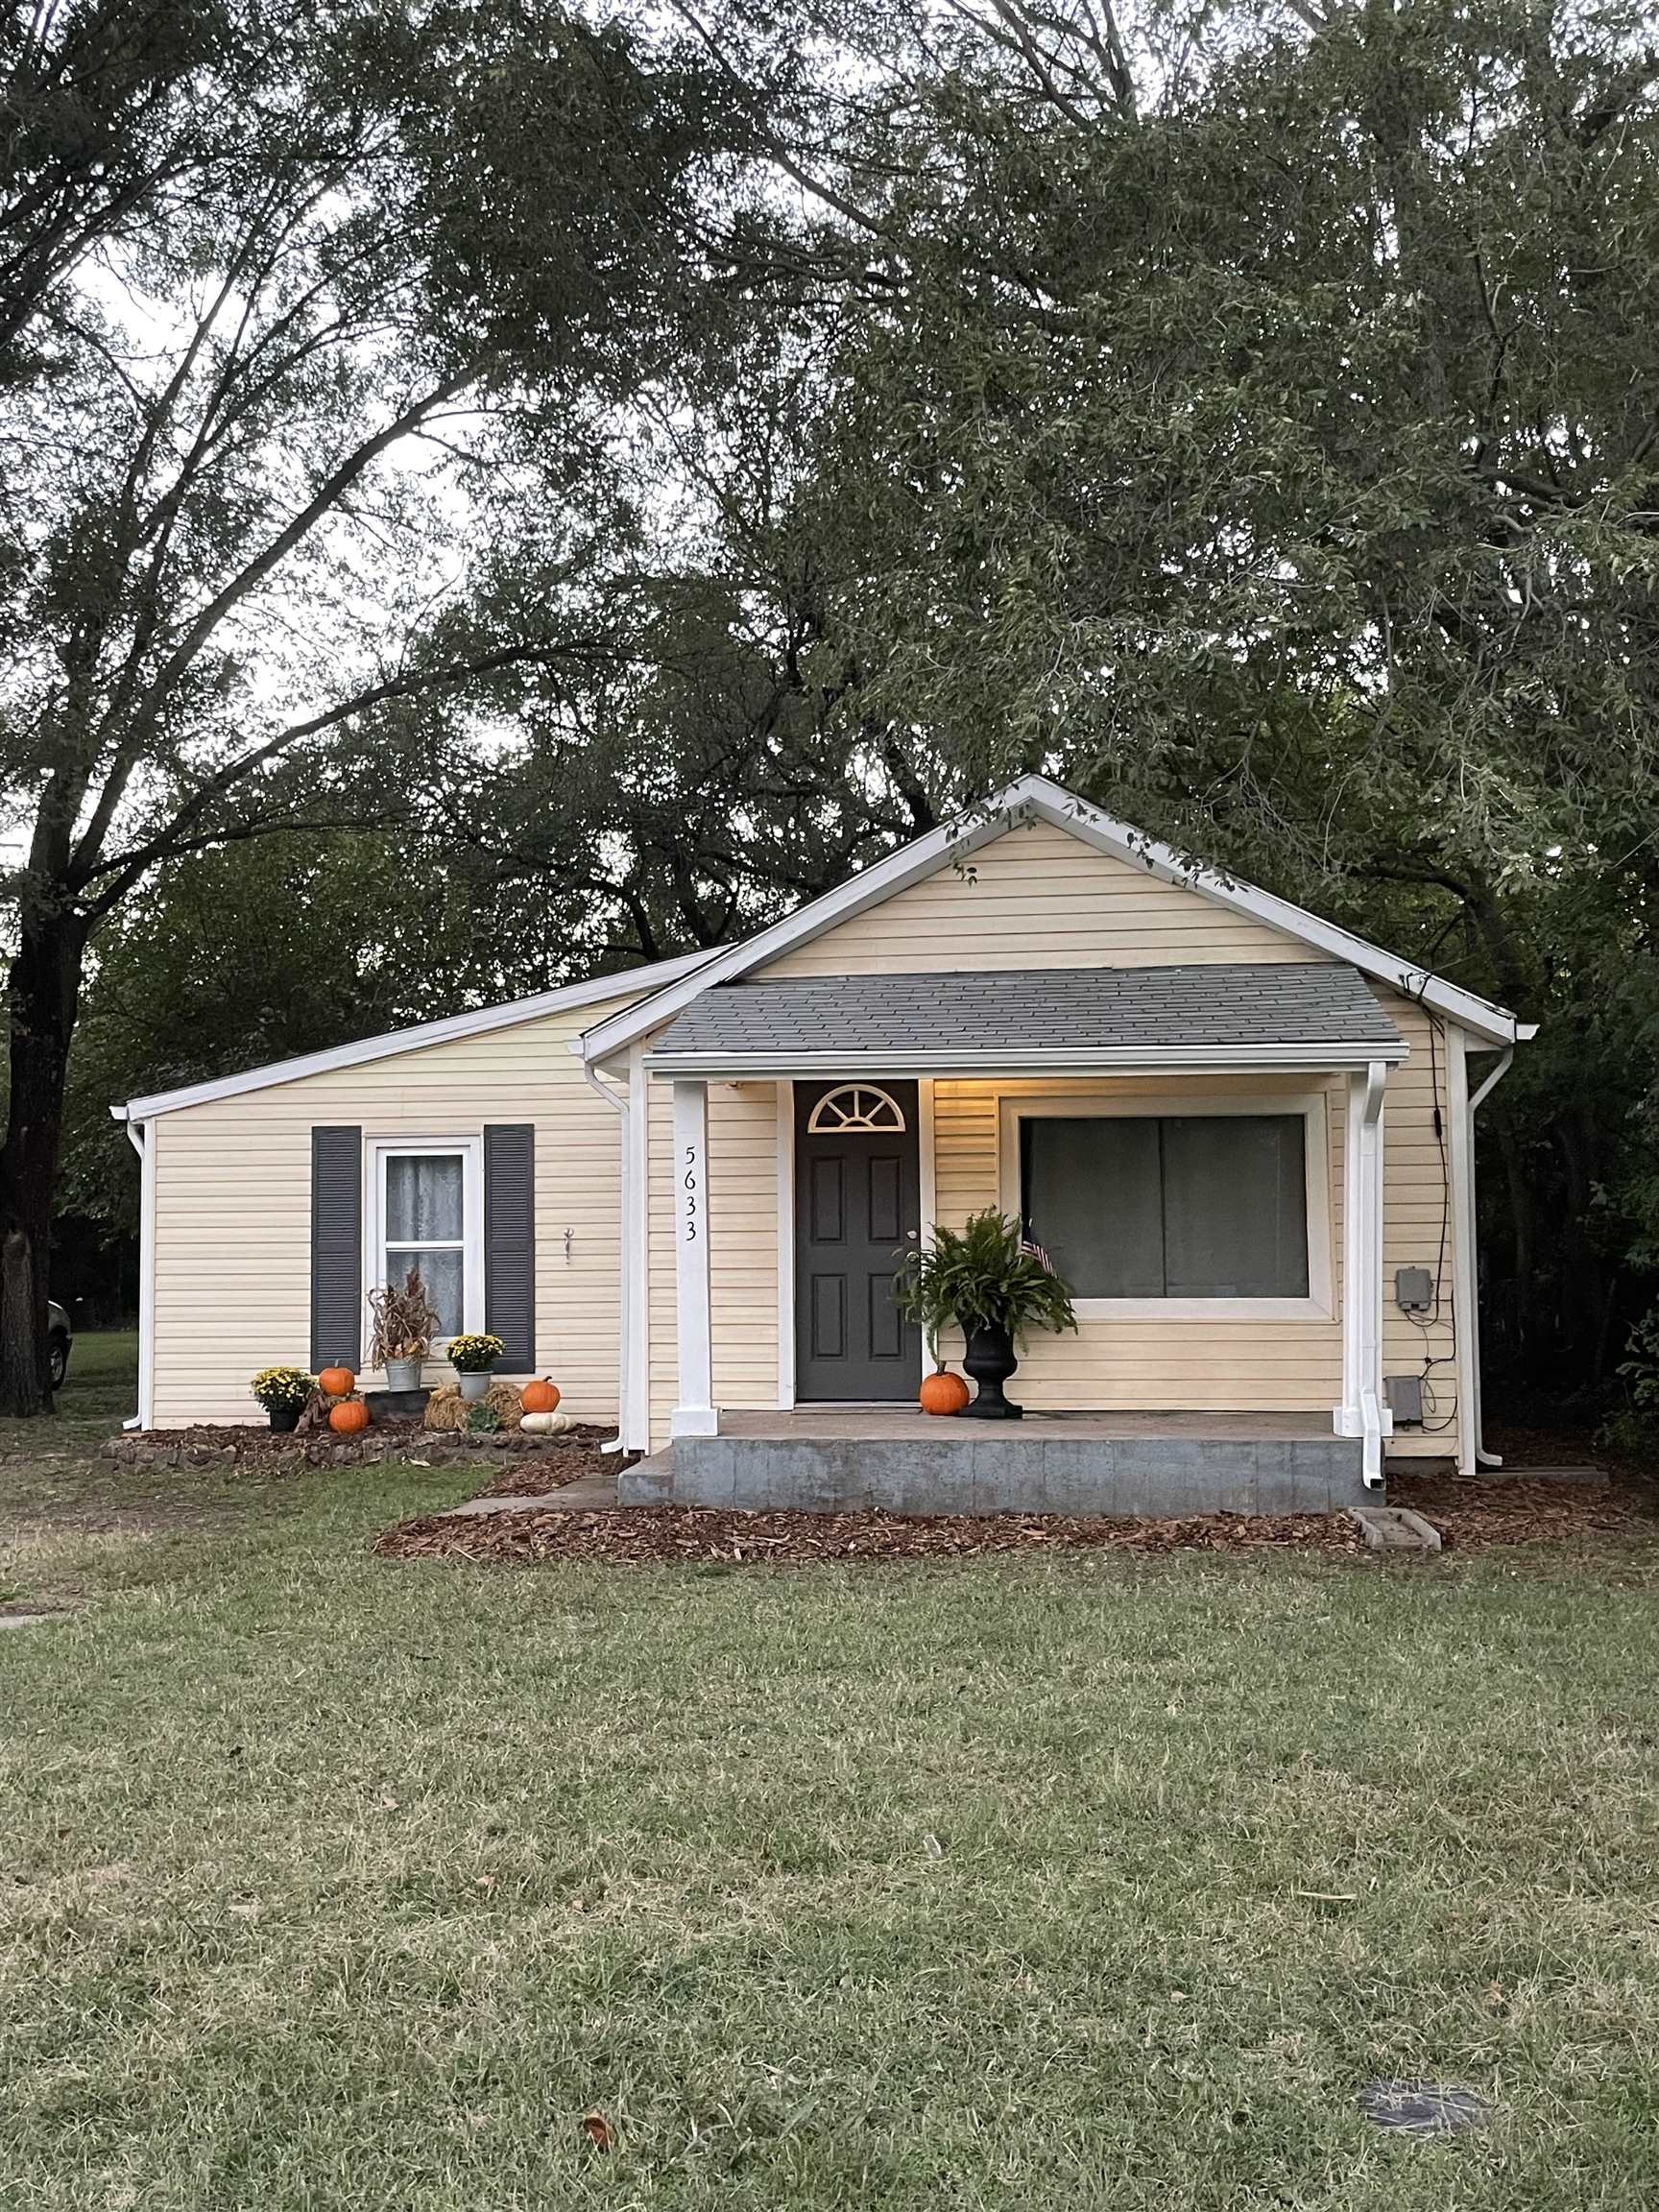 Newly remodeled 4 bedroom/1 bath home on just under a half acre wooded lot.  This quaint home has fr